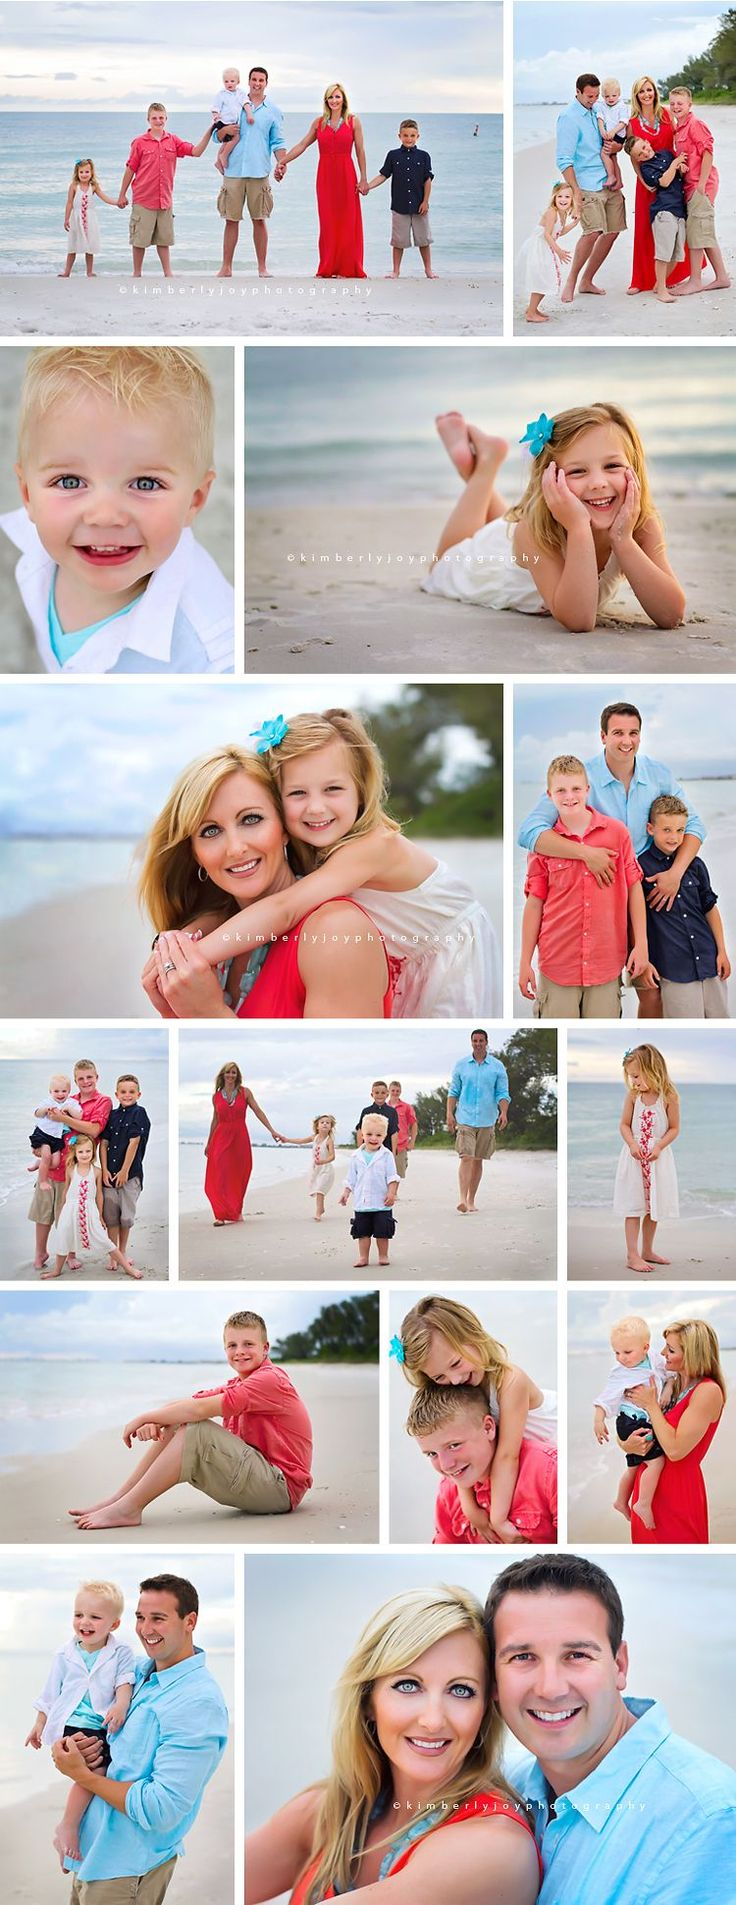 Best 25 Family photo colors ideas on Pinterest Family